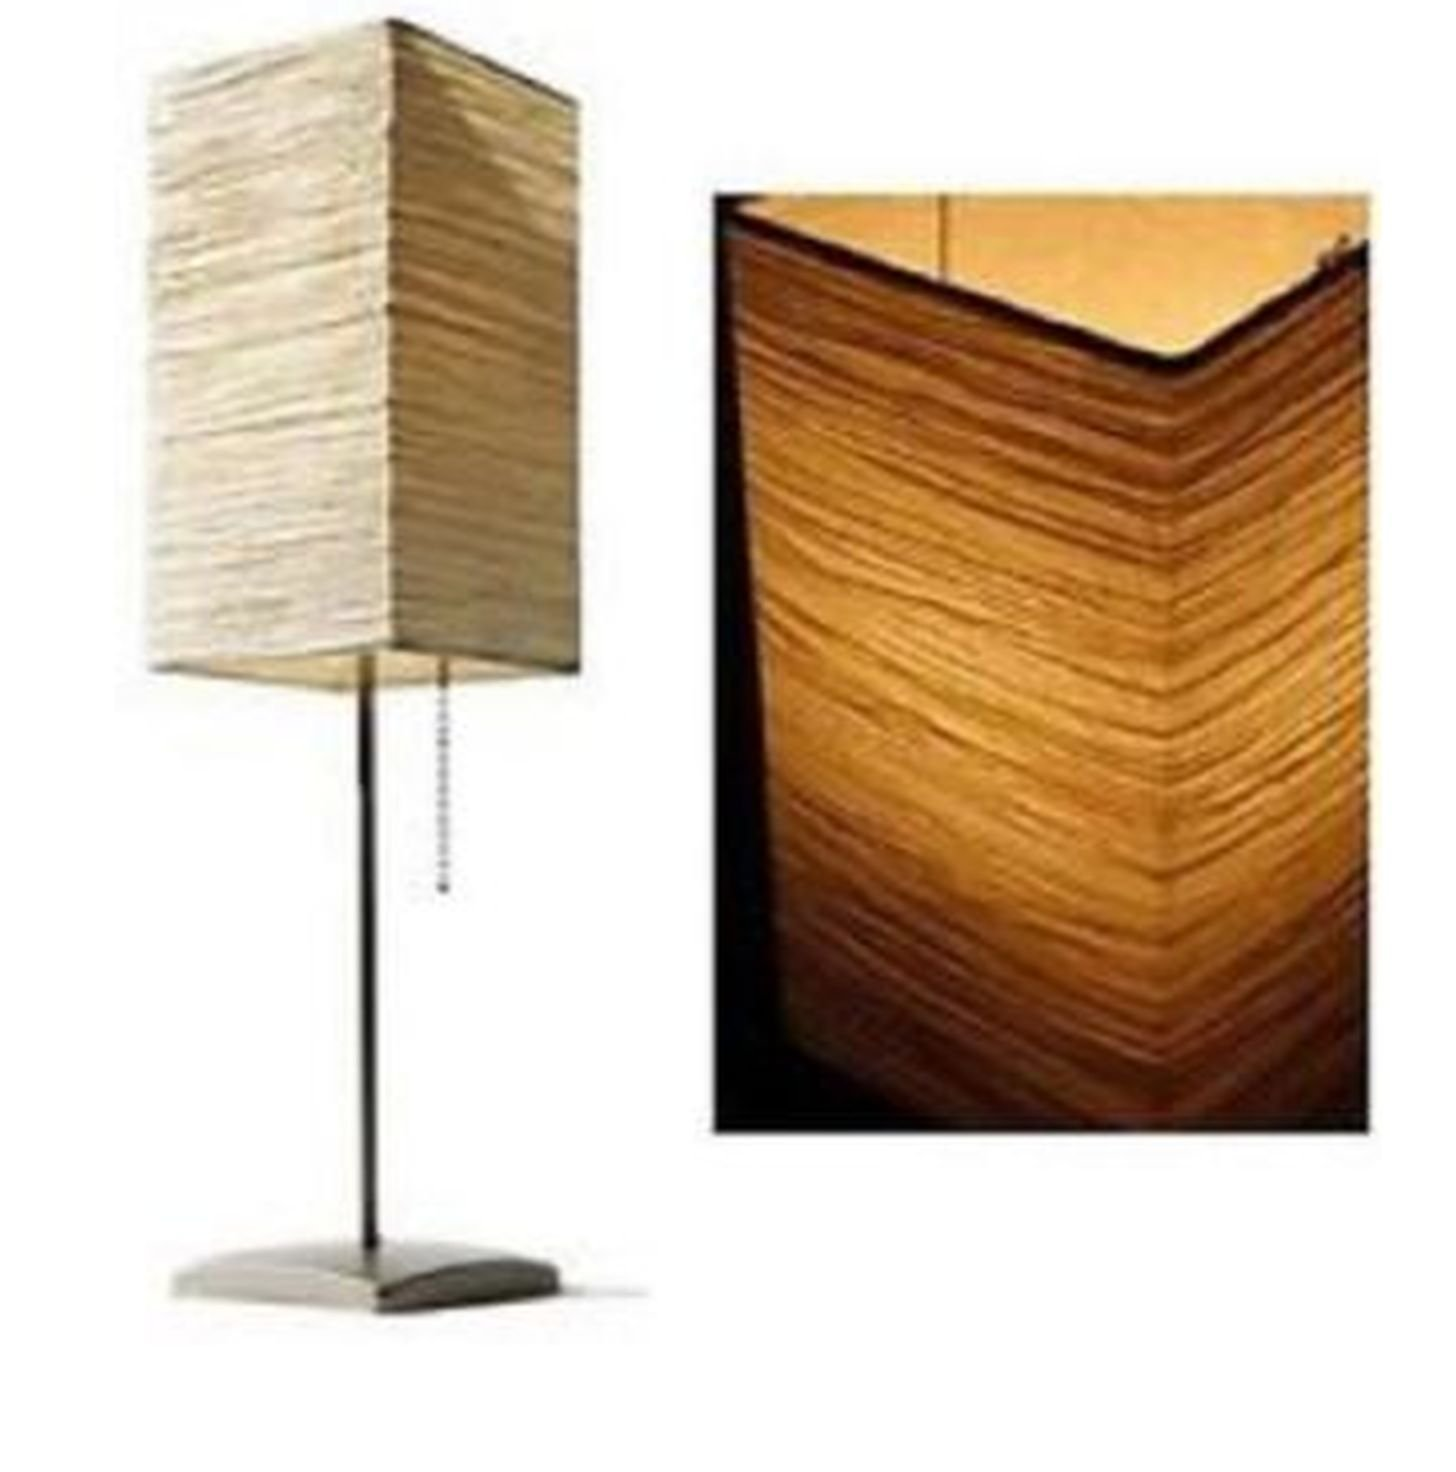 Ikea Magnarp Table Lamp Light Paper Set Of 2 Modern